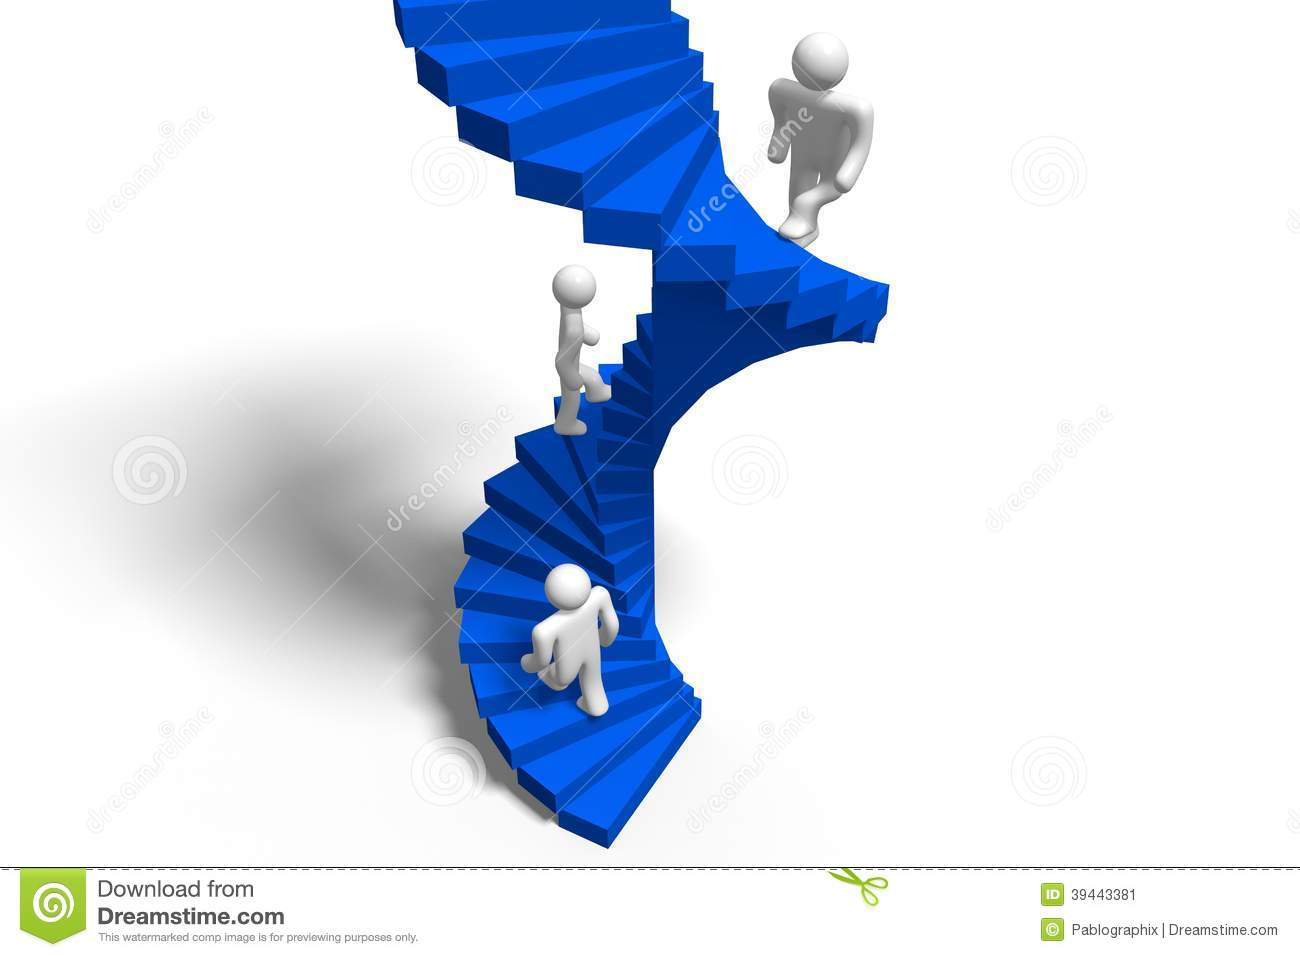 promotion stairs career upstairs stairs higher stock promotion stairs career upstairs stairs higher